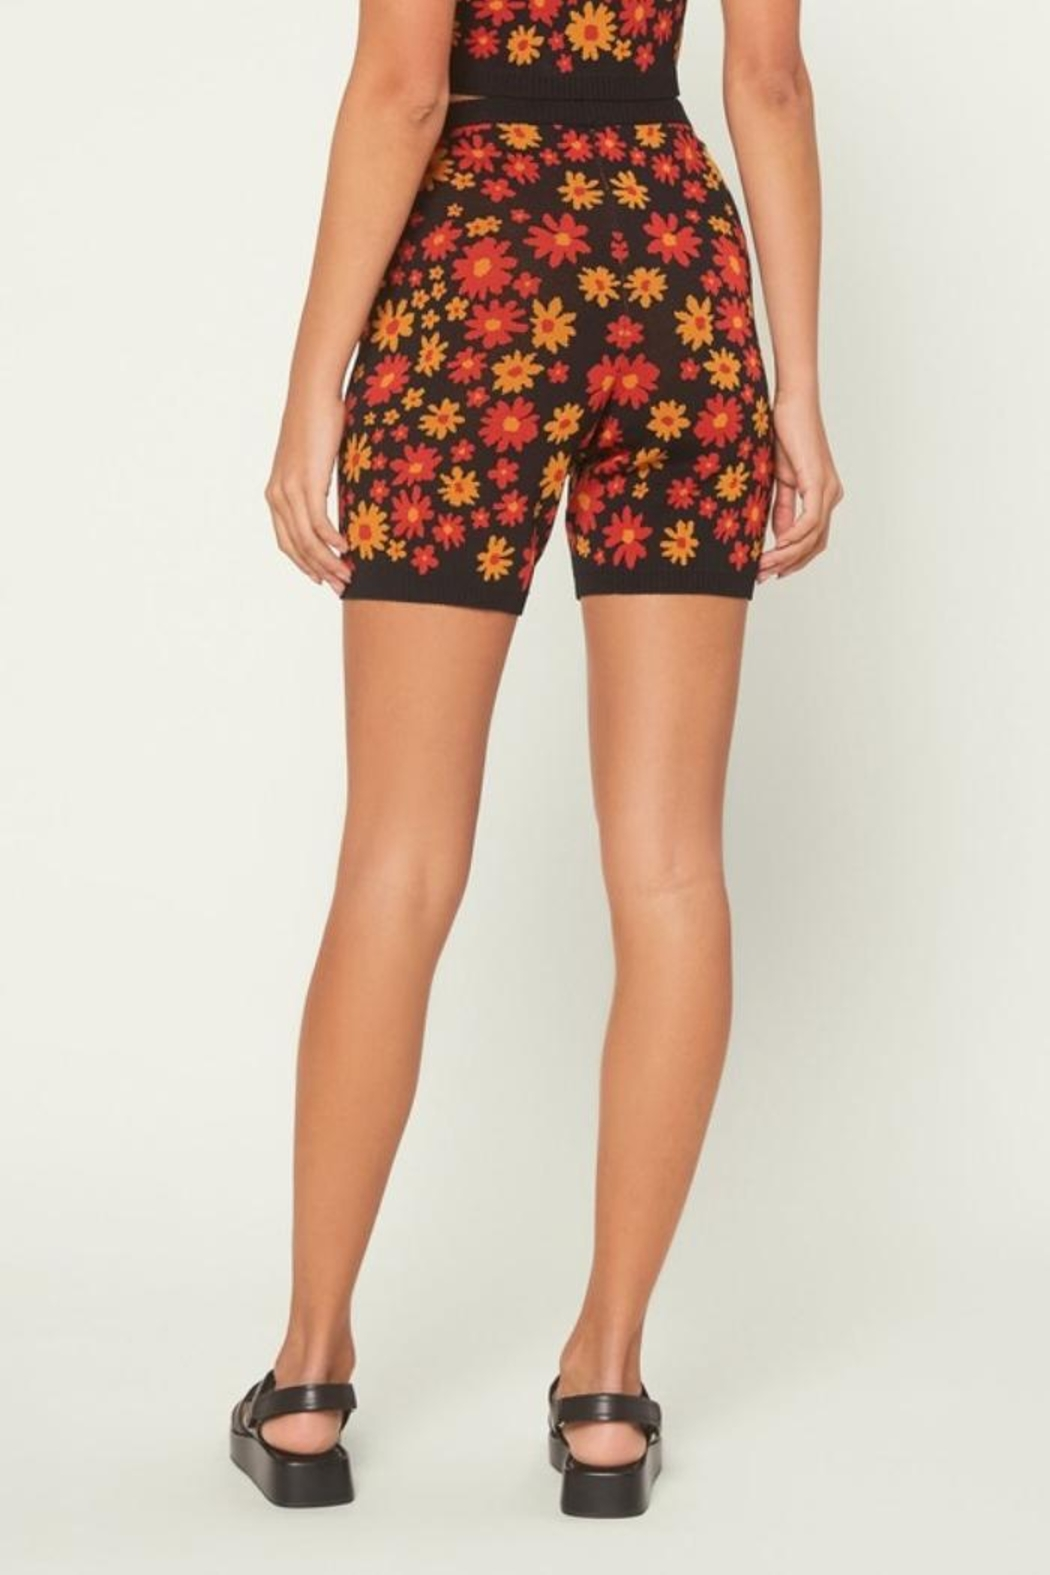 Current Air Floral Knit Shorts - Side Cropped Image